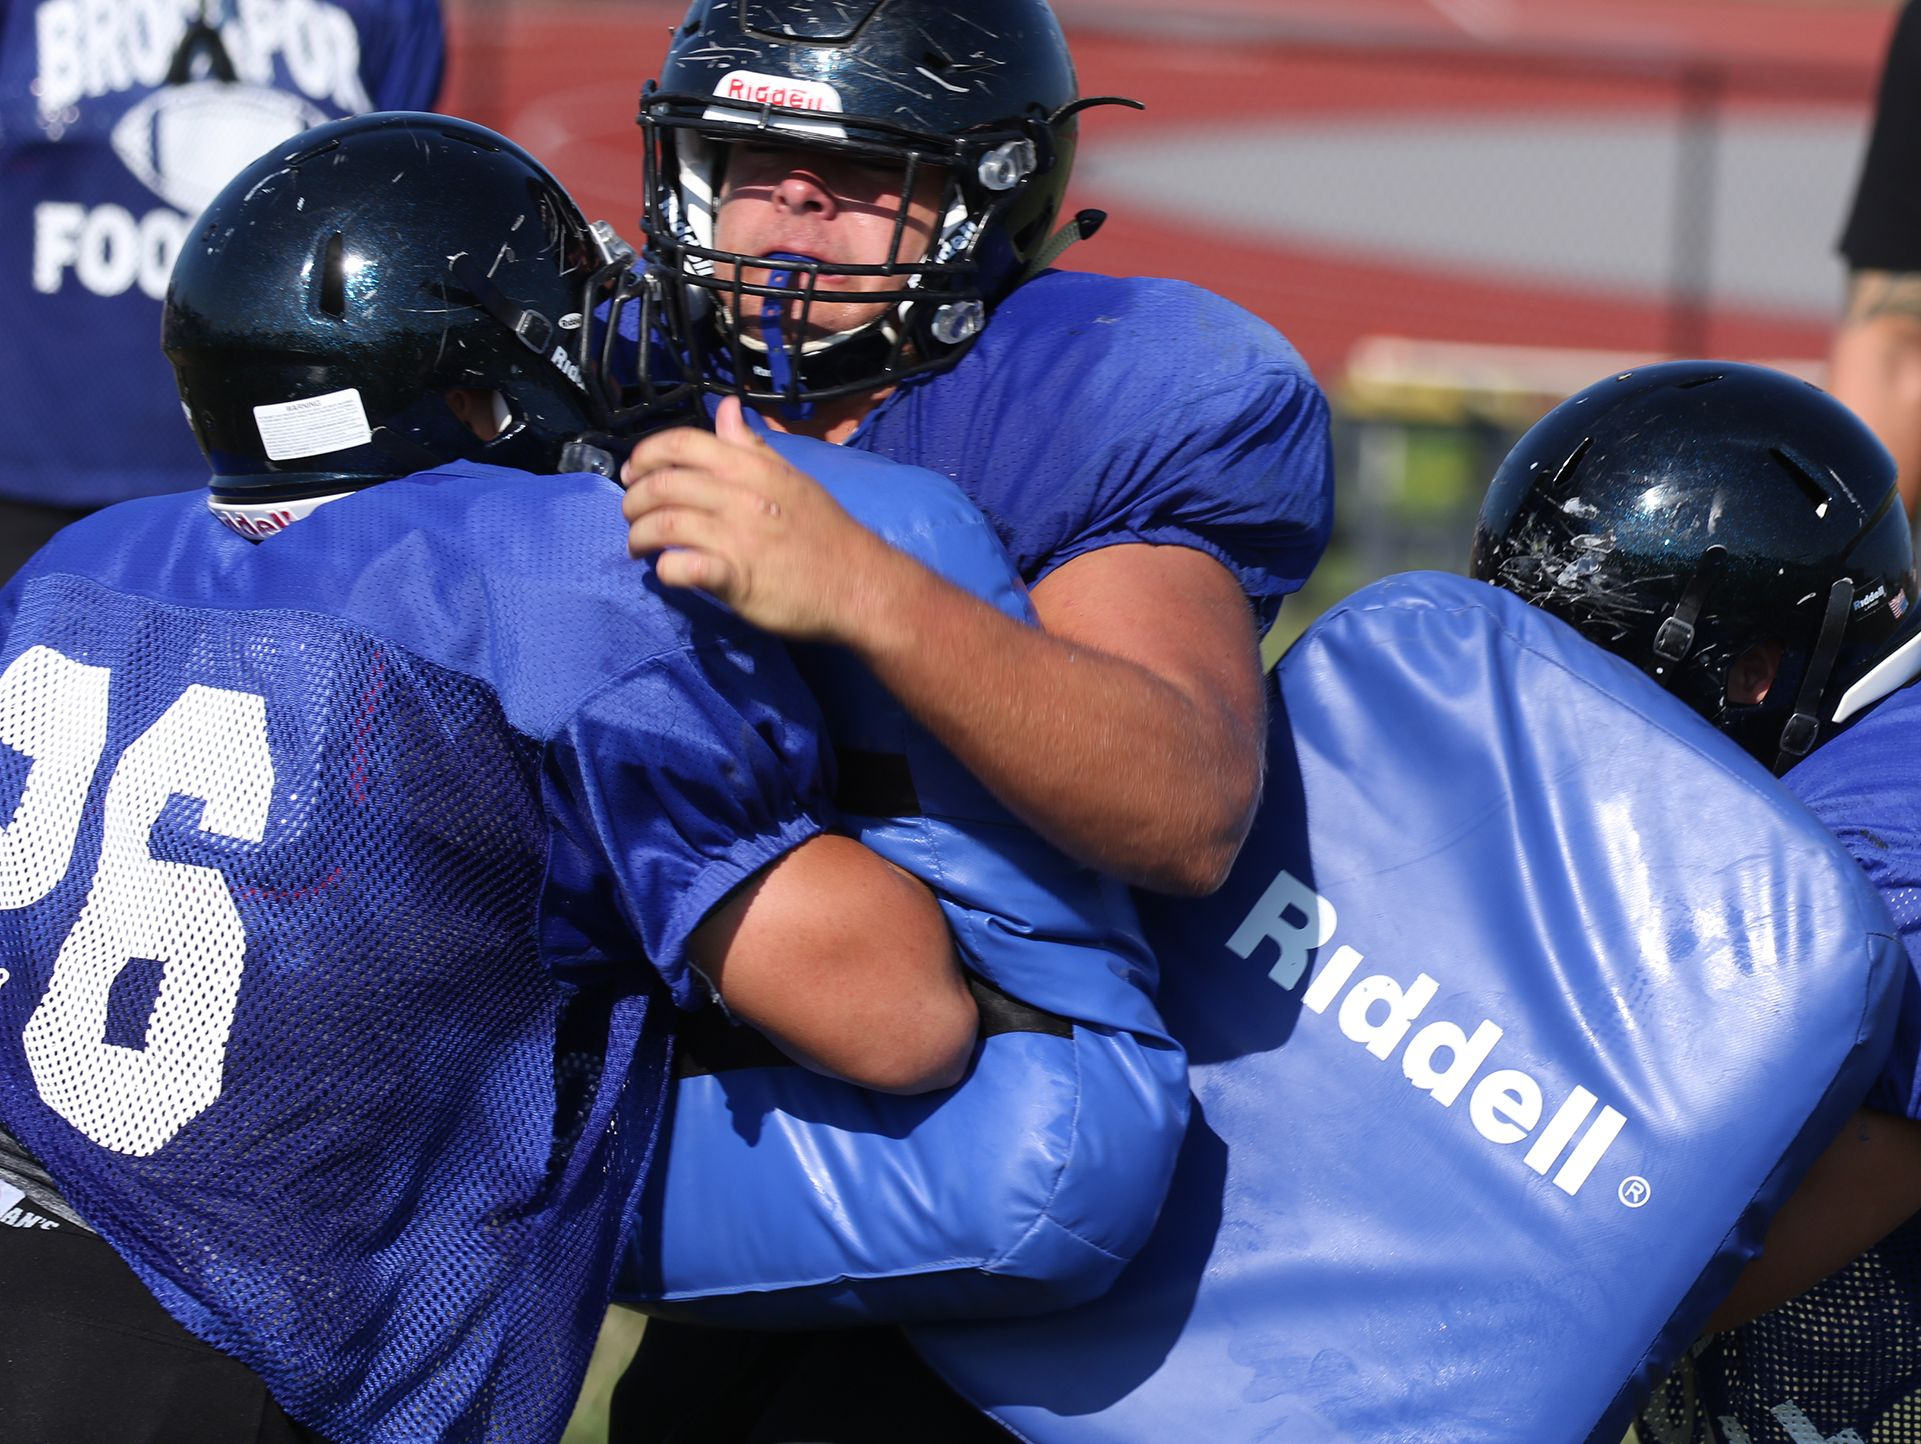 Mike Mattison breaks through a block by Jagger Kachmaryk and Anthony Polizzi.